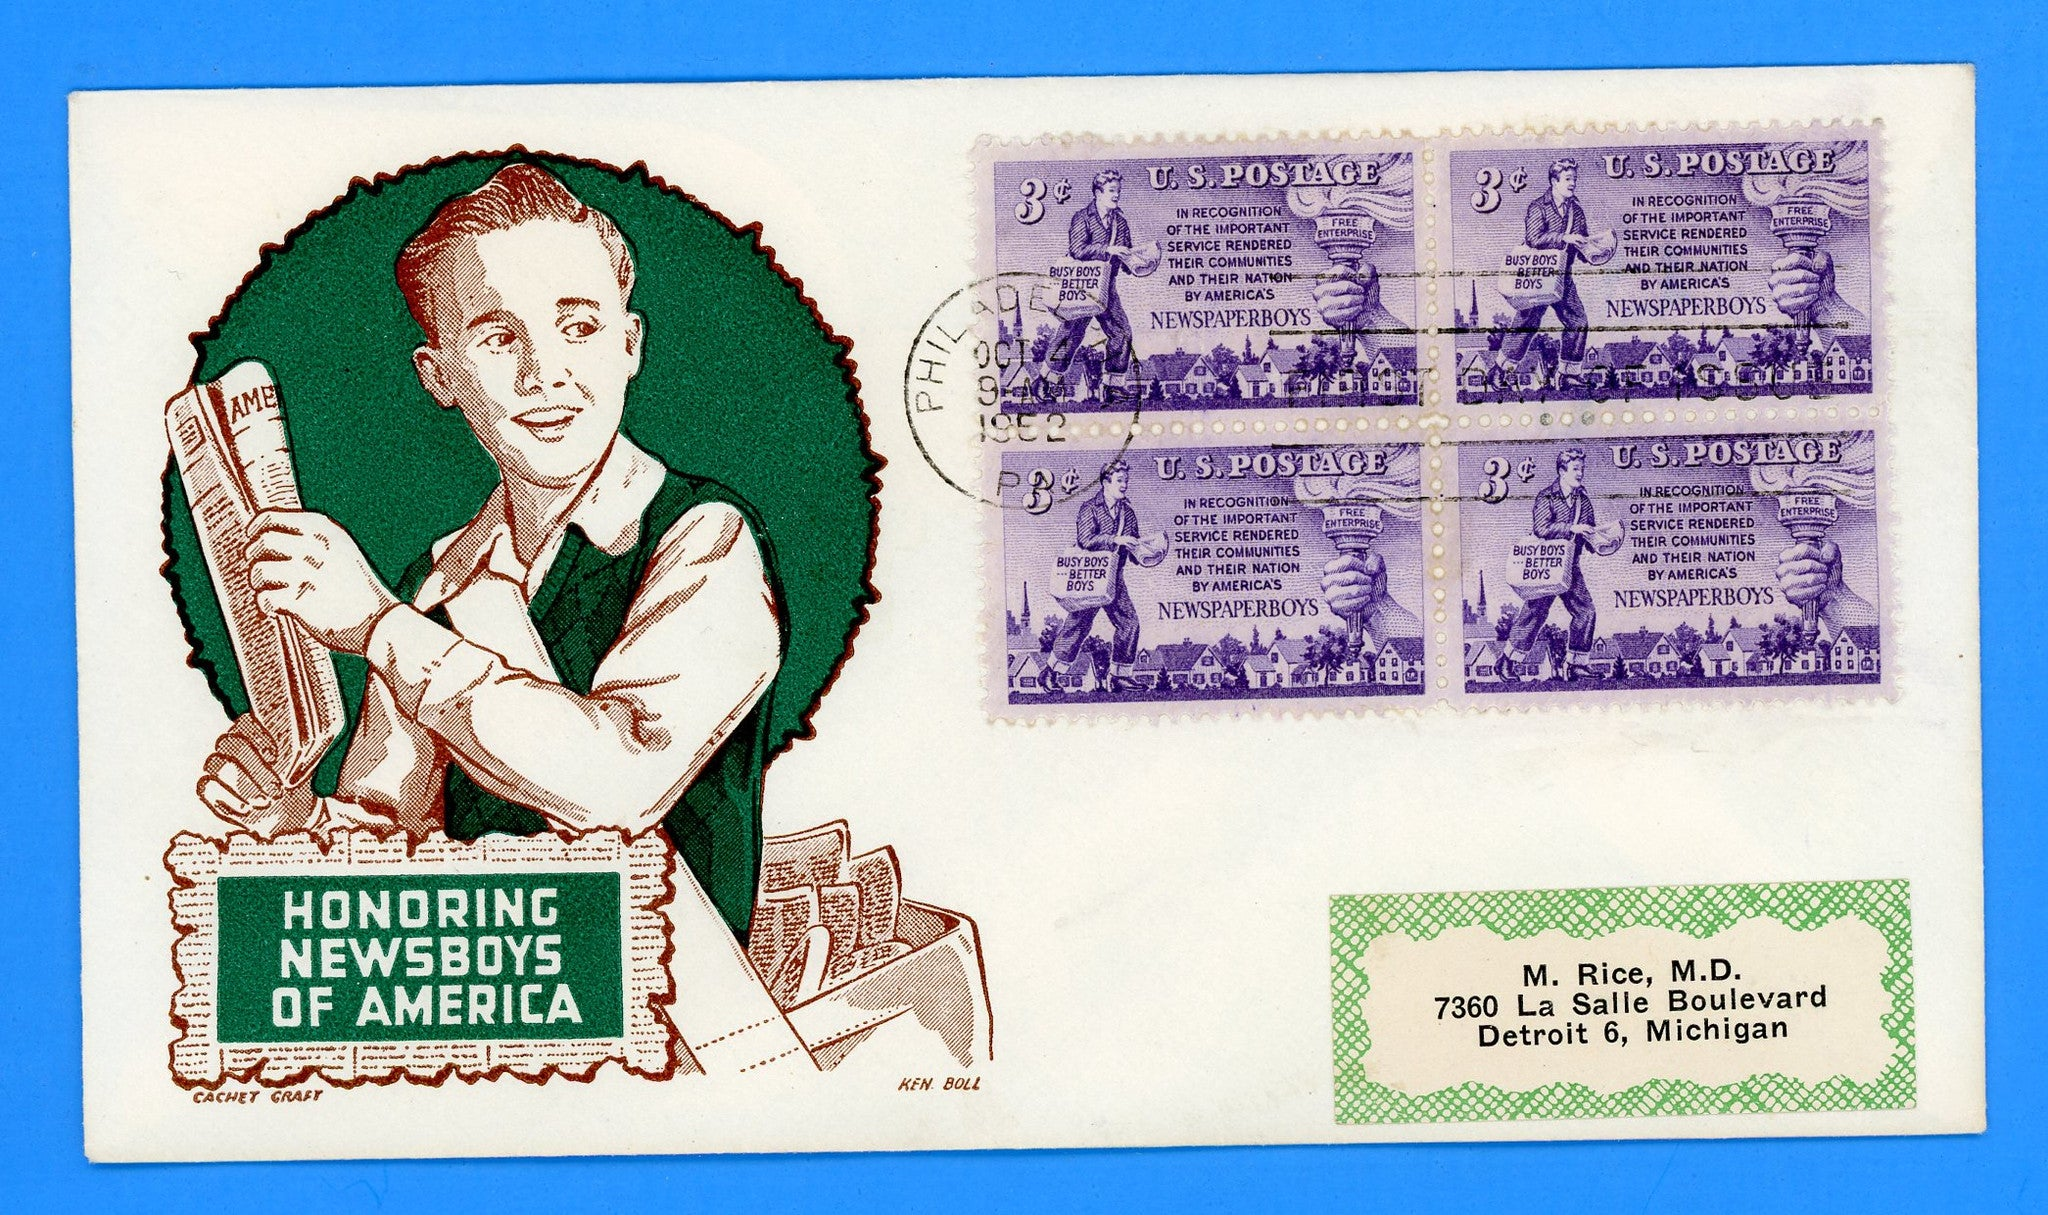 Scott 1015 Newspaper Boys First Day Cover by Cachet Craft/Boll